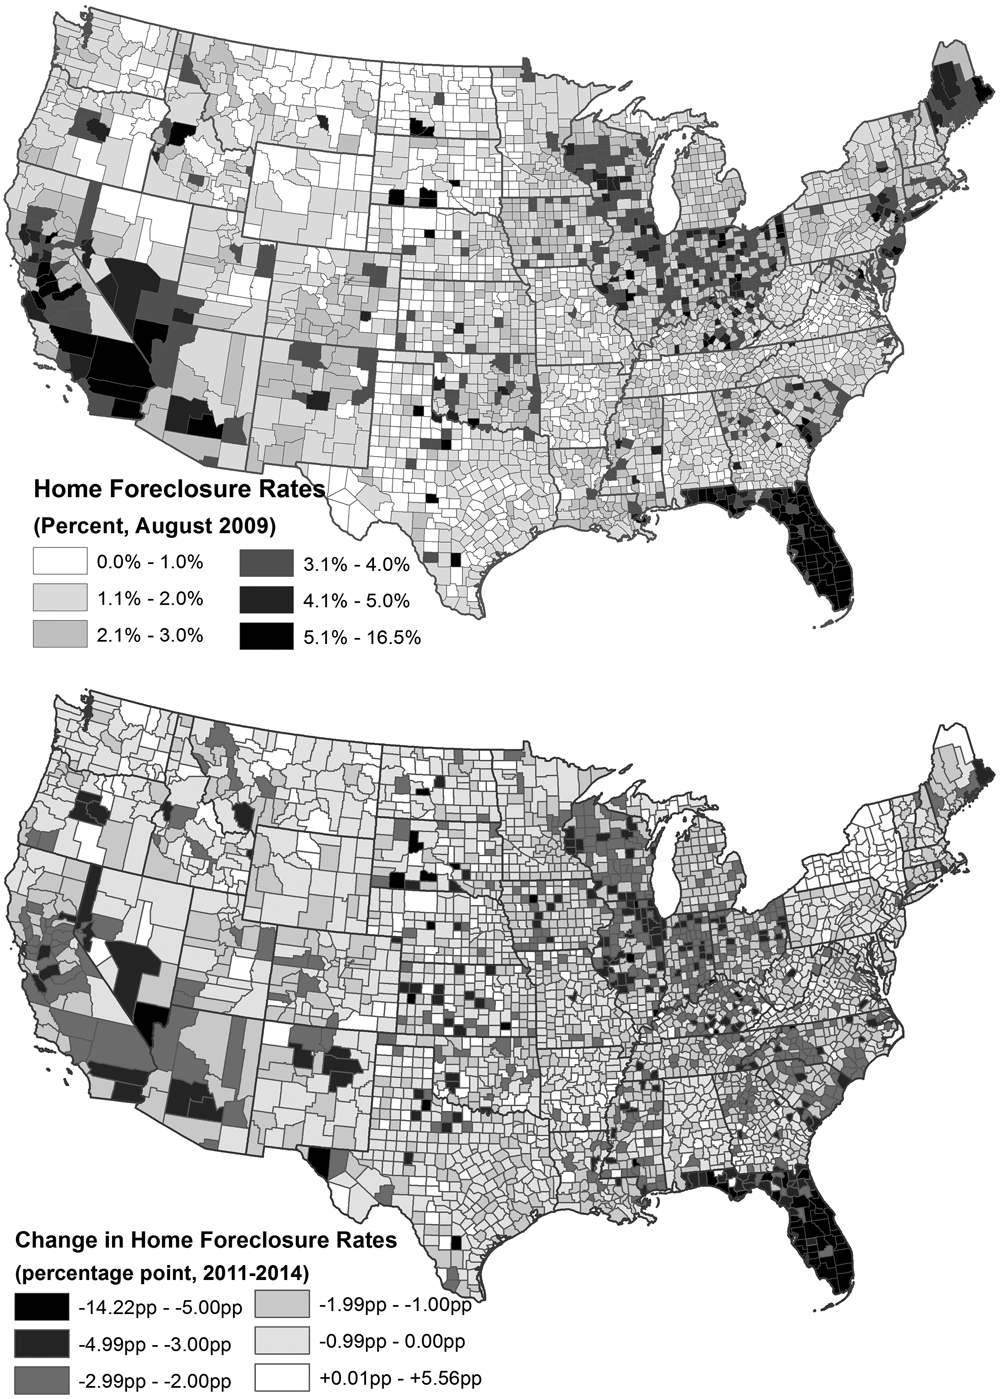 Geographical distribution of county-level home foreclosure rates in August 2009 and (bottom) changes in county-level home foreclosure rates between August 2011 and August 2014. Source: County-level foreclosure data from Black Knight (formerly LPS Applied Analytics). From ''Neighborhood Affordability and Housing Market Resilience,'' in Journal of the American Planning Association (Vol. 85, No. 4).